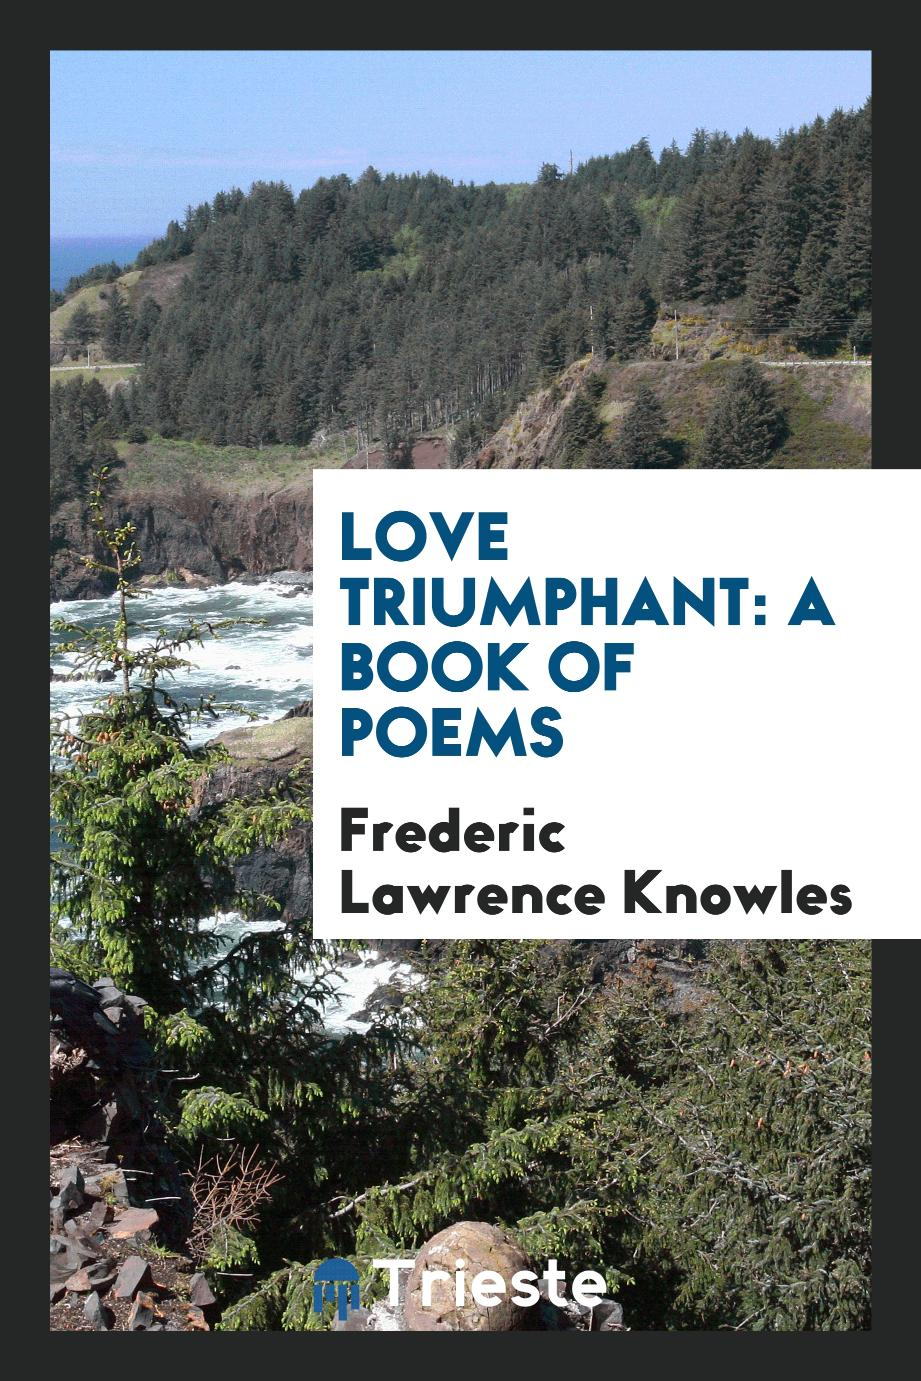 Love triumphant: A book of poems